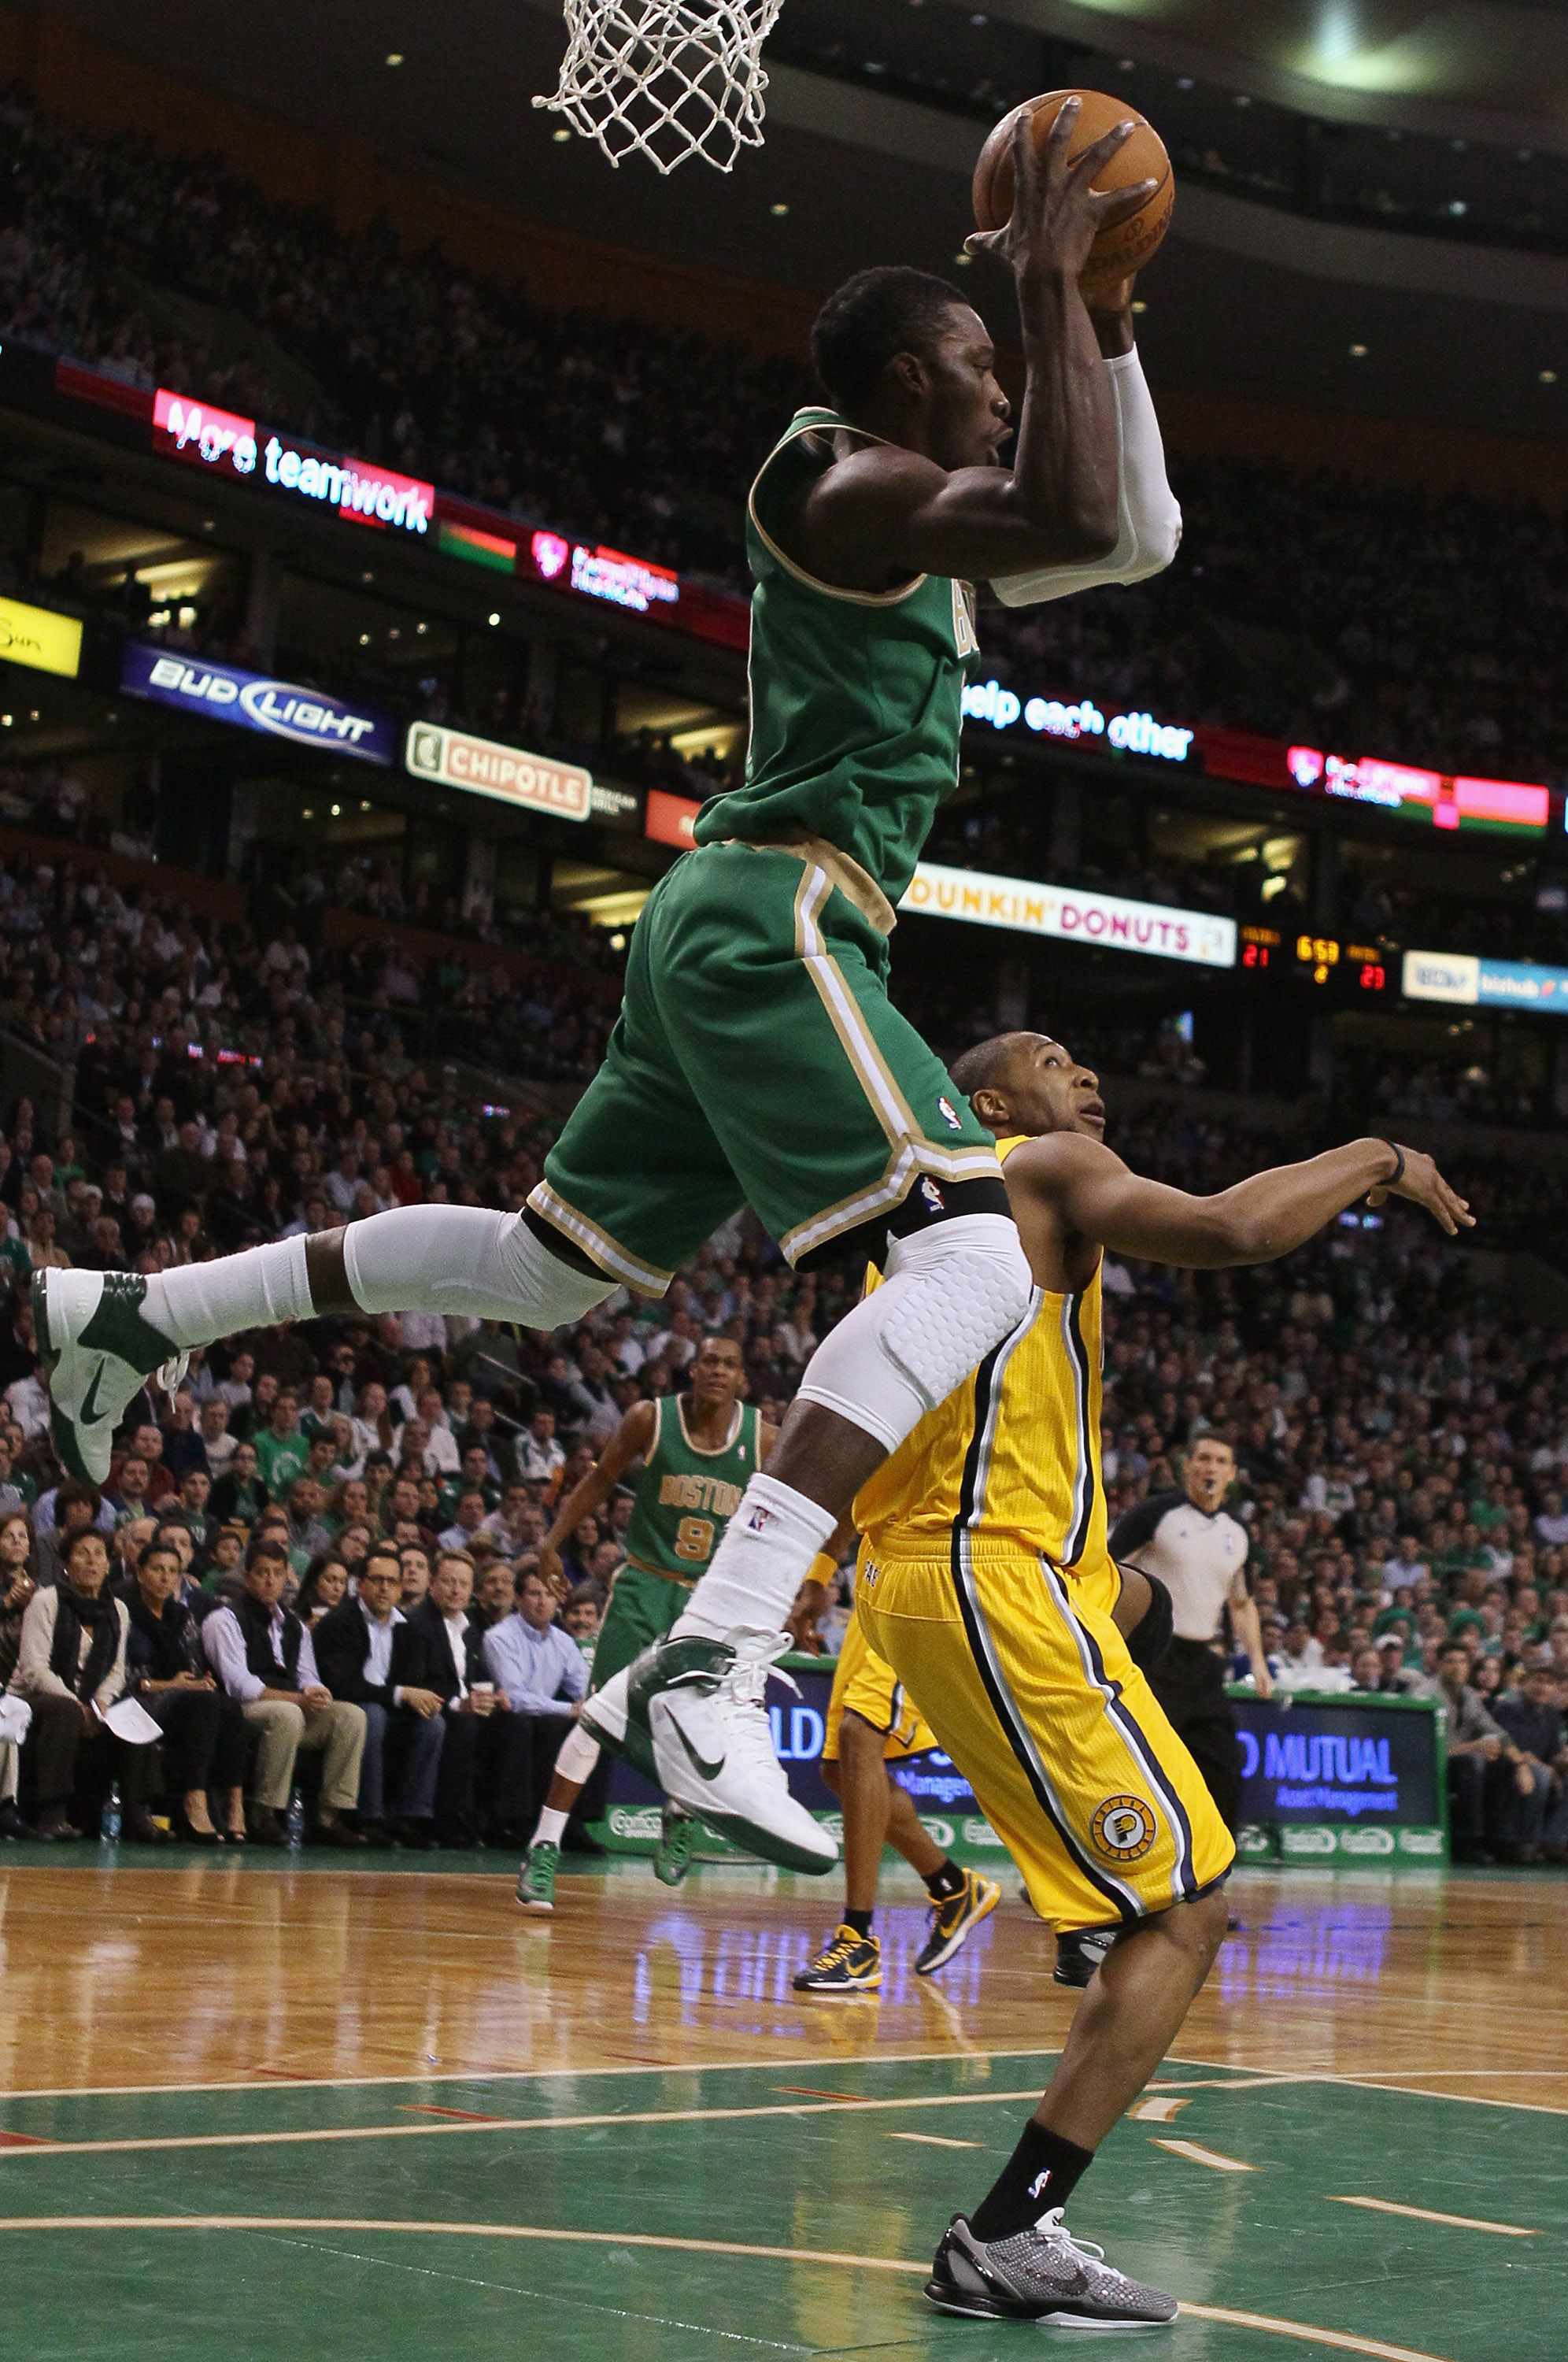 BOSTON, MA - MARCH 16:  Jeff Green #8 of the Boston Celtics grabs a pass as A.J. Price #12 of the Indiana Pacers defends on March 16, 2011 at the TD Garden in Boston, Massachusetts.  NOTE TO USER: User expressly acknowledges and agrees that, by downloadin